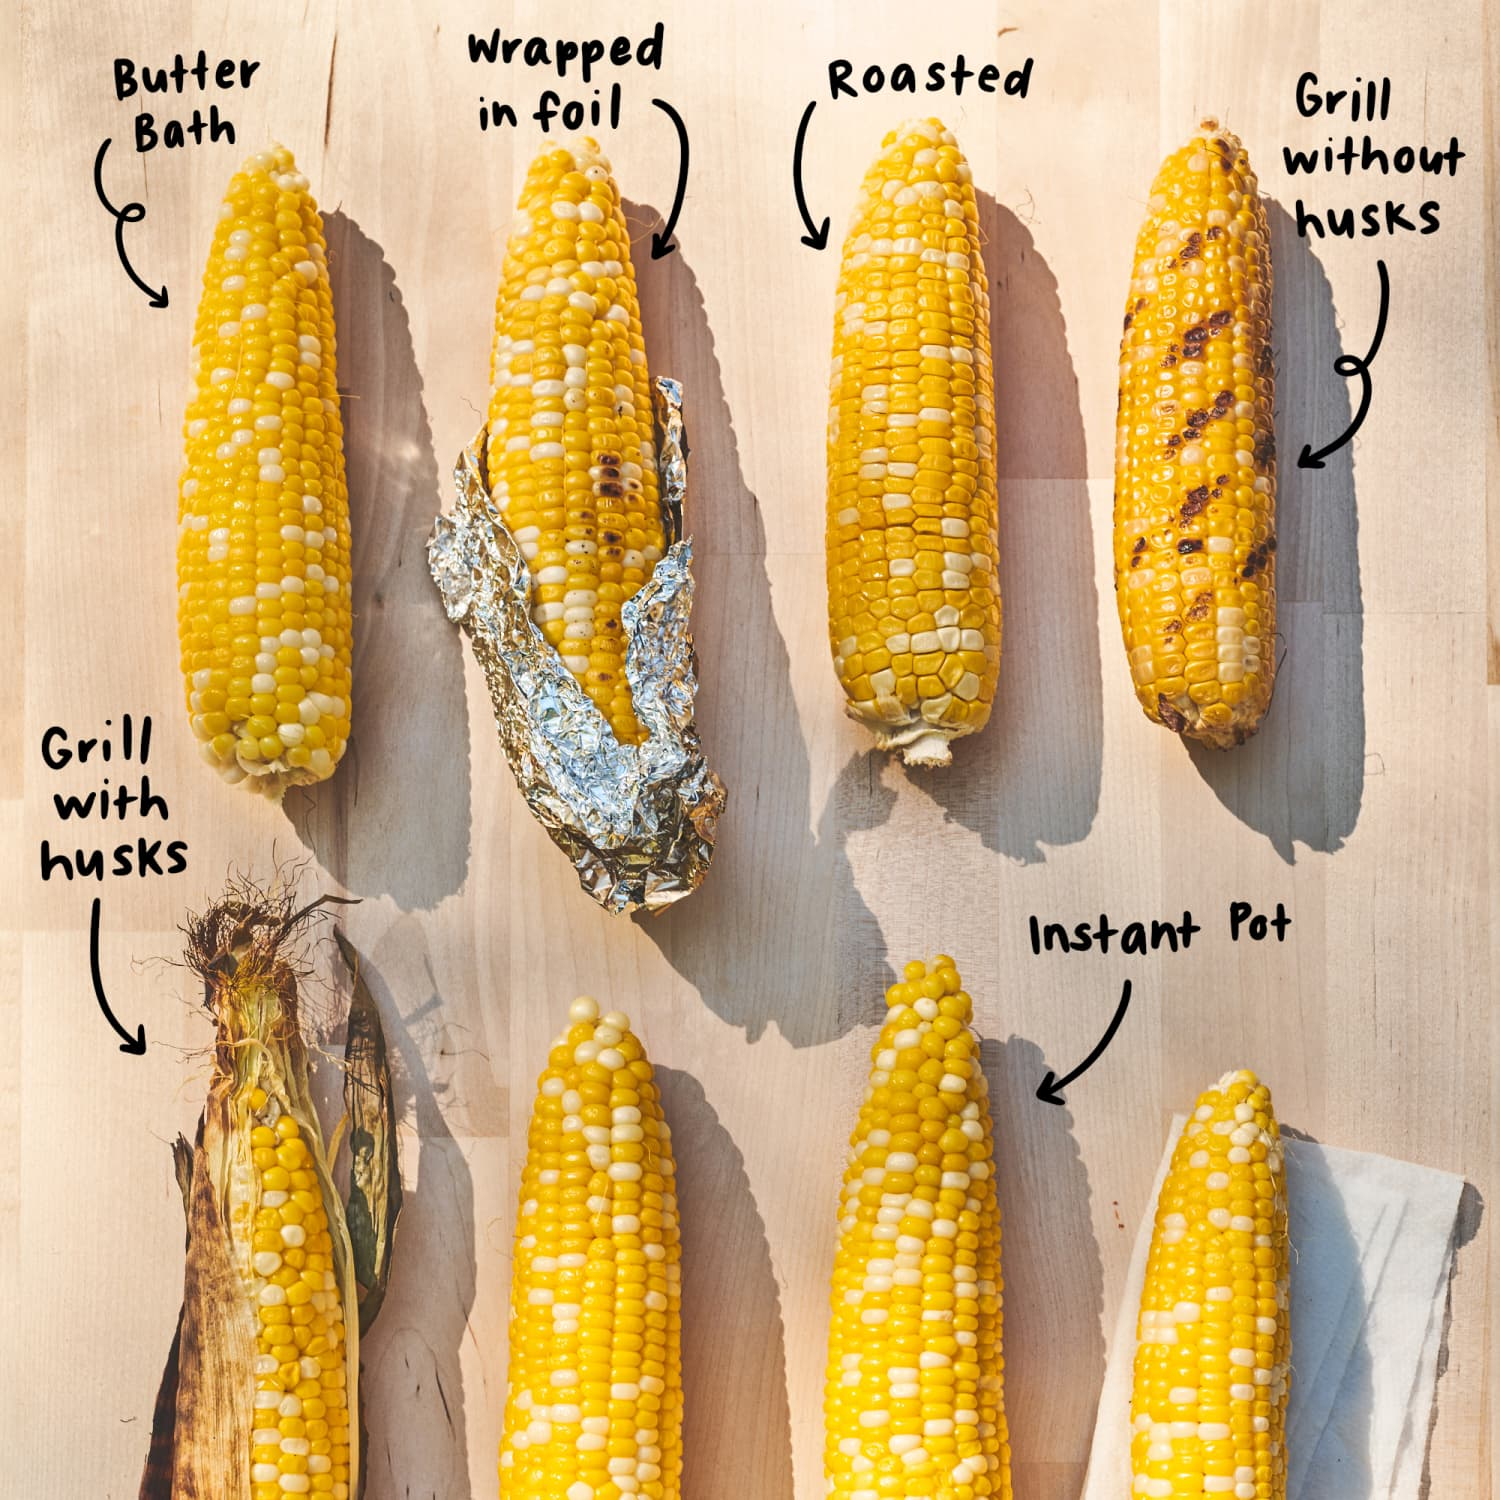 We Tried 25 Methods for Cooking Corn on the Cob and Found a Clear